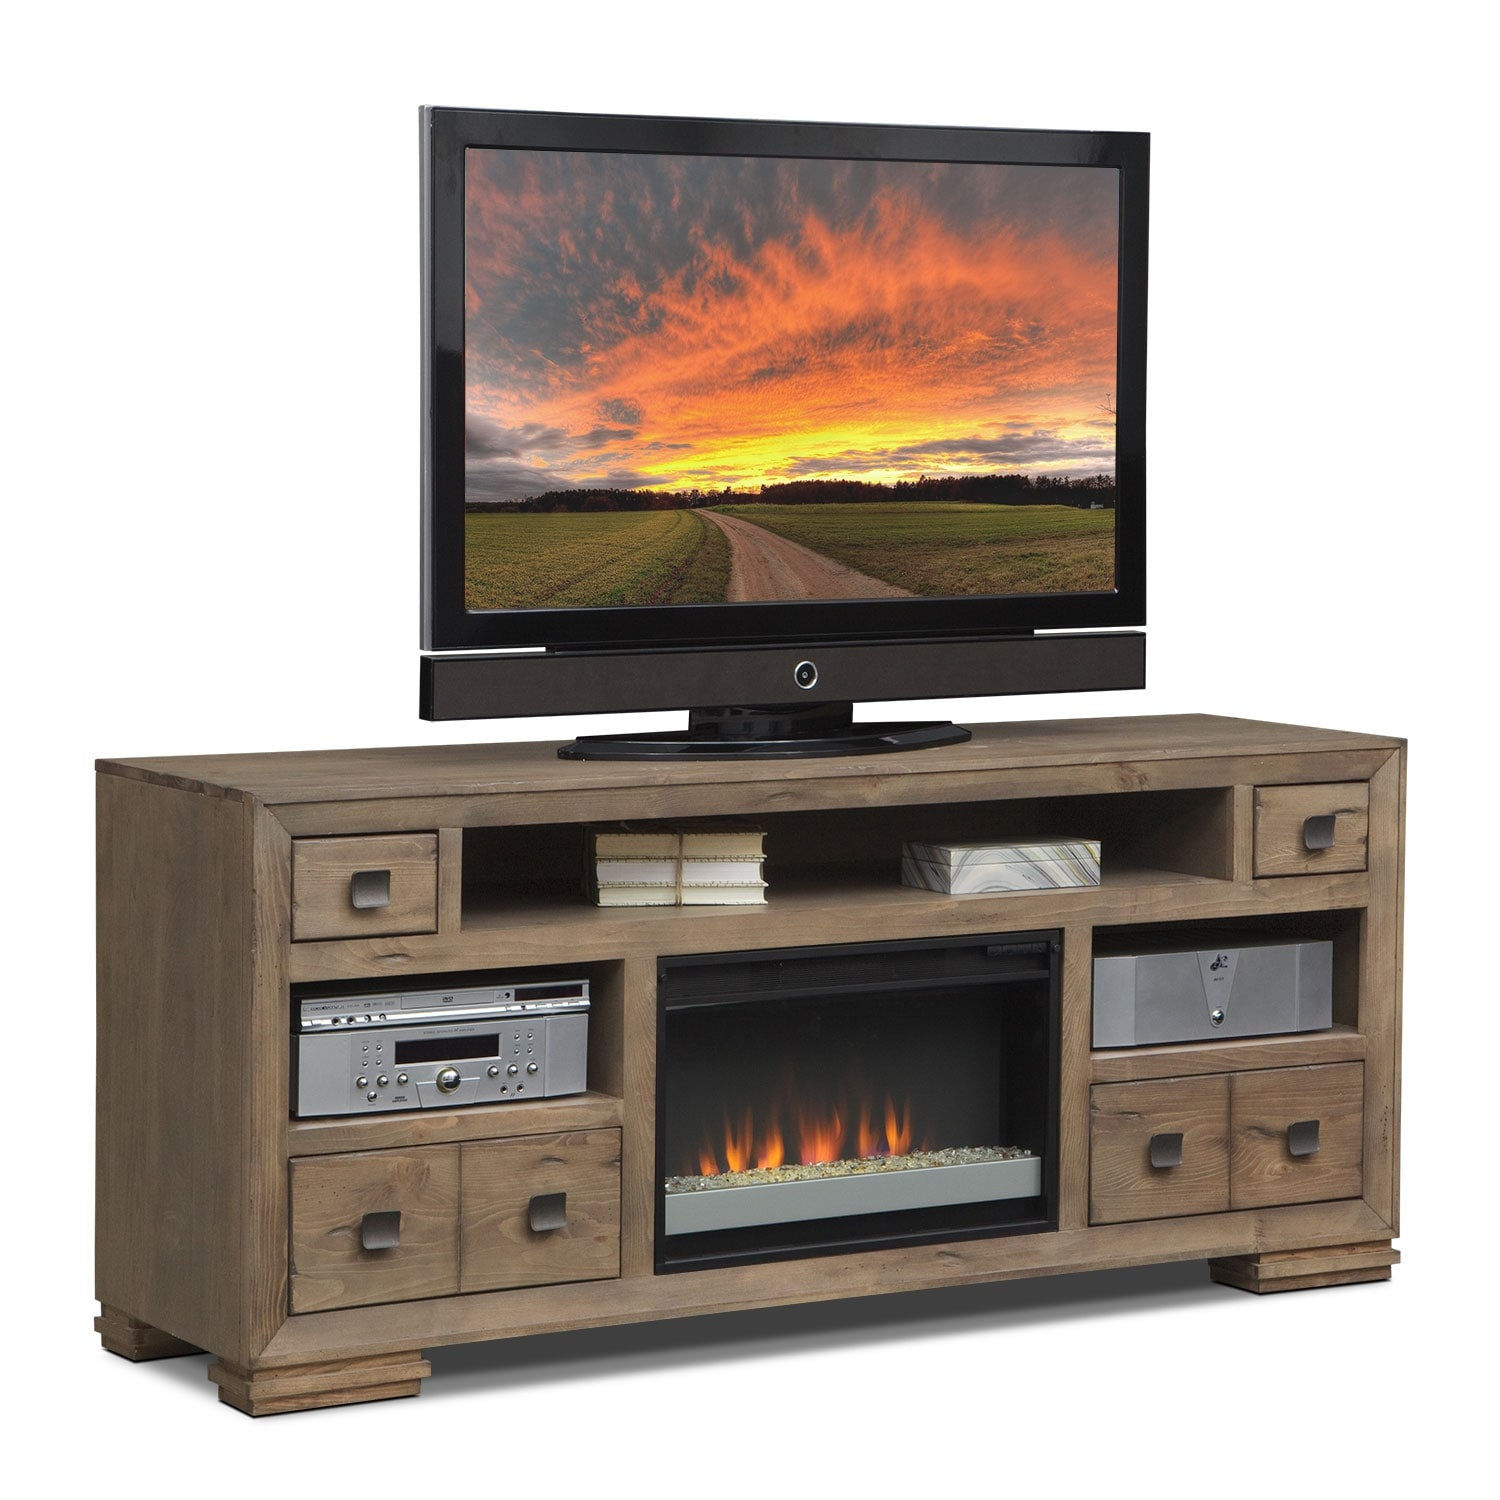 Mesa 74 Quot Fireplace Tv Stand With Contemporary Insert